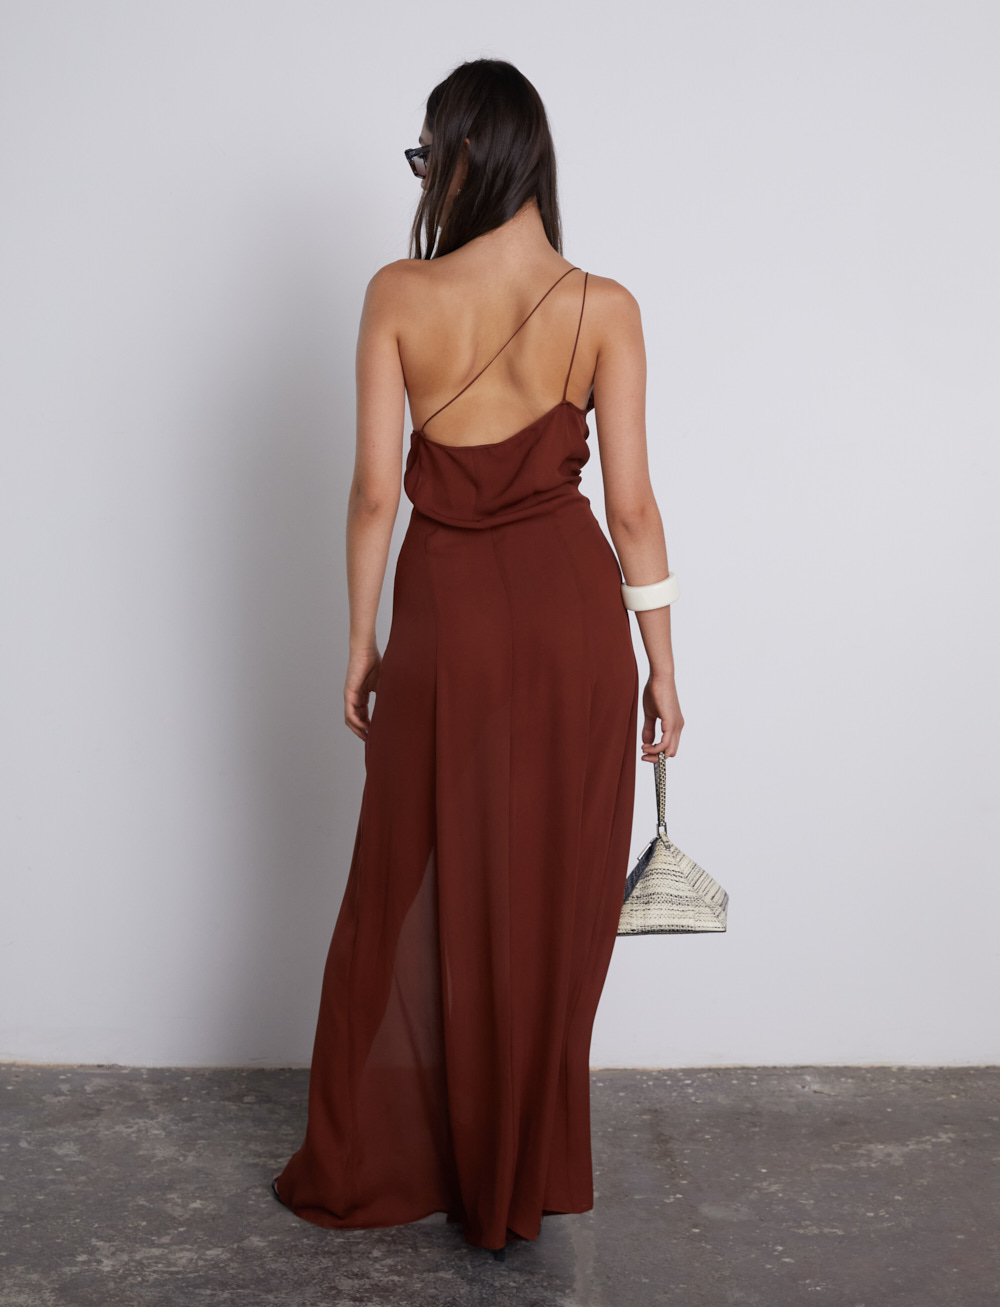 Sage Dress by Manurí on curated-crowd.com